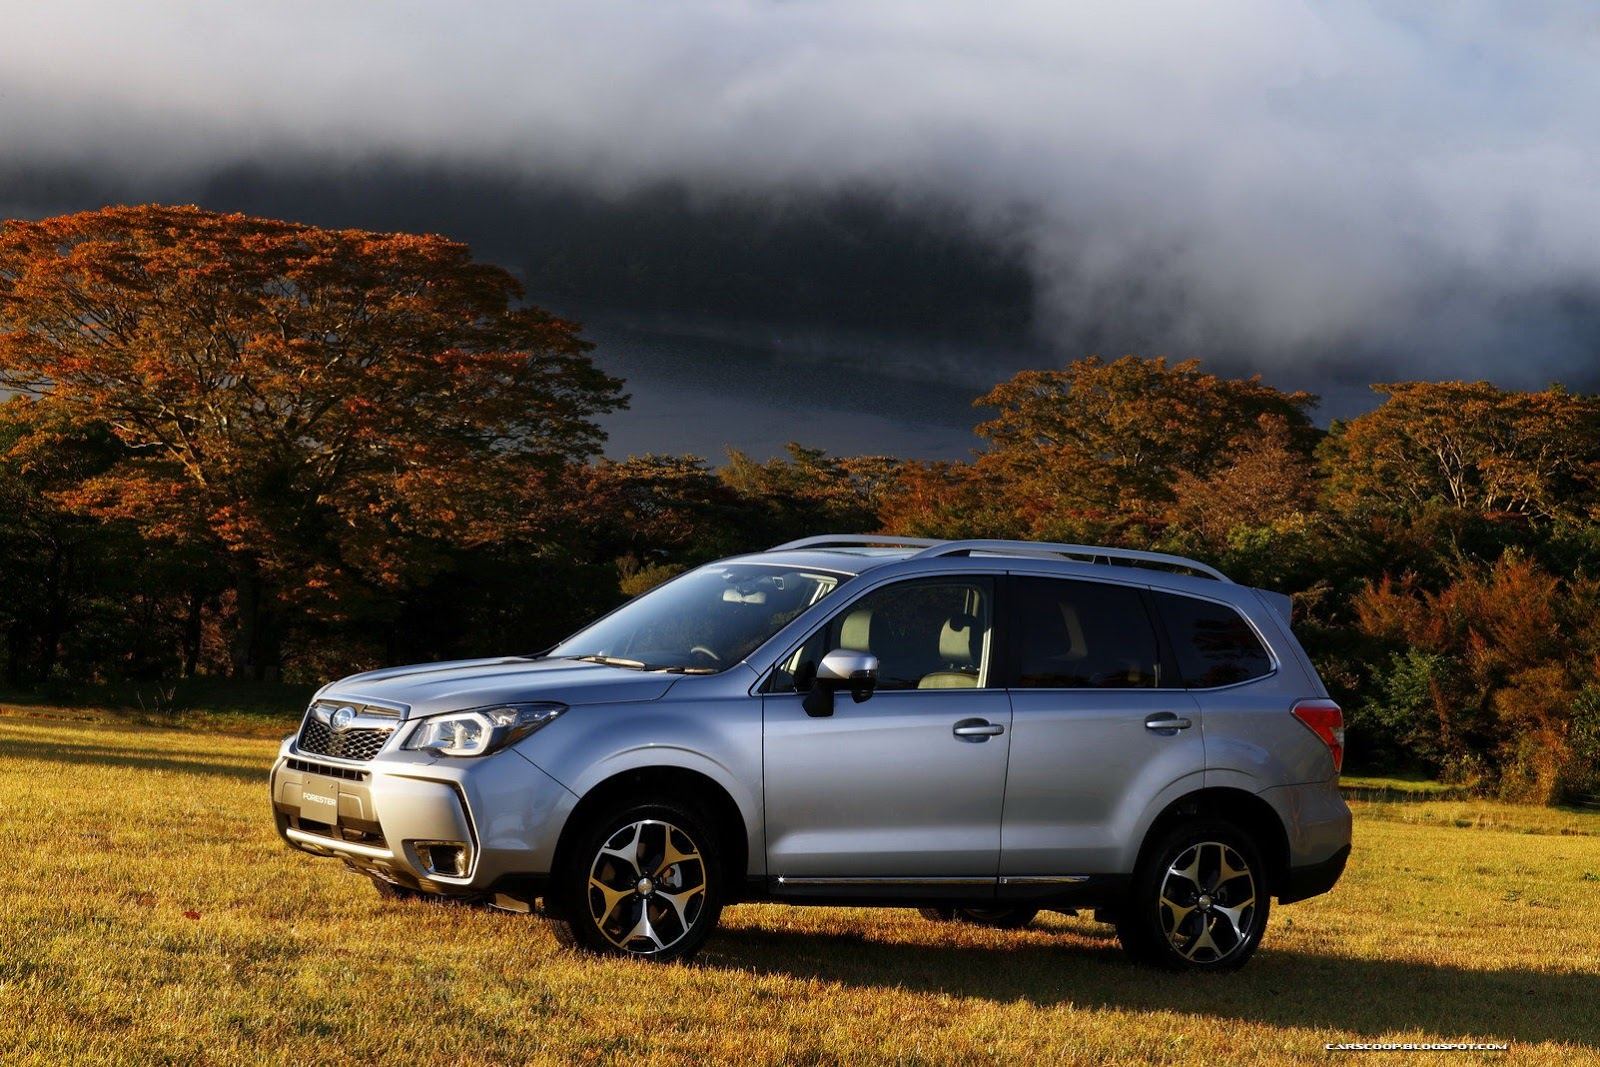 2014 Subaru Forester will debut at the Los Angeles Auto Show